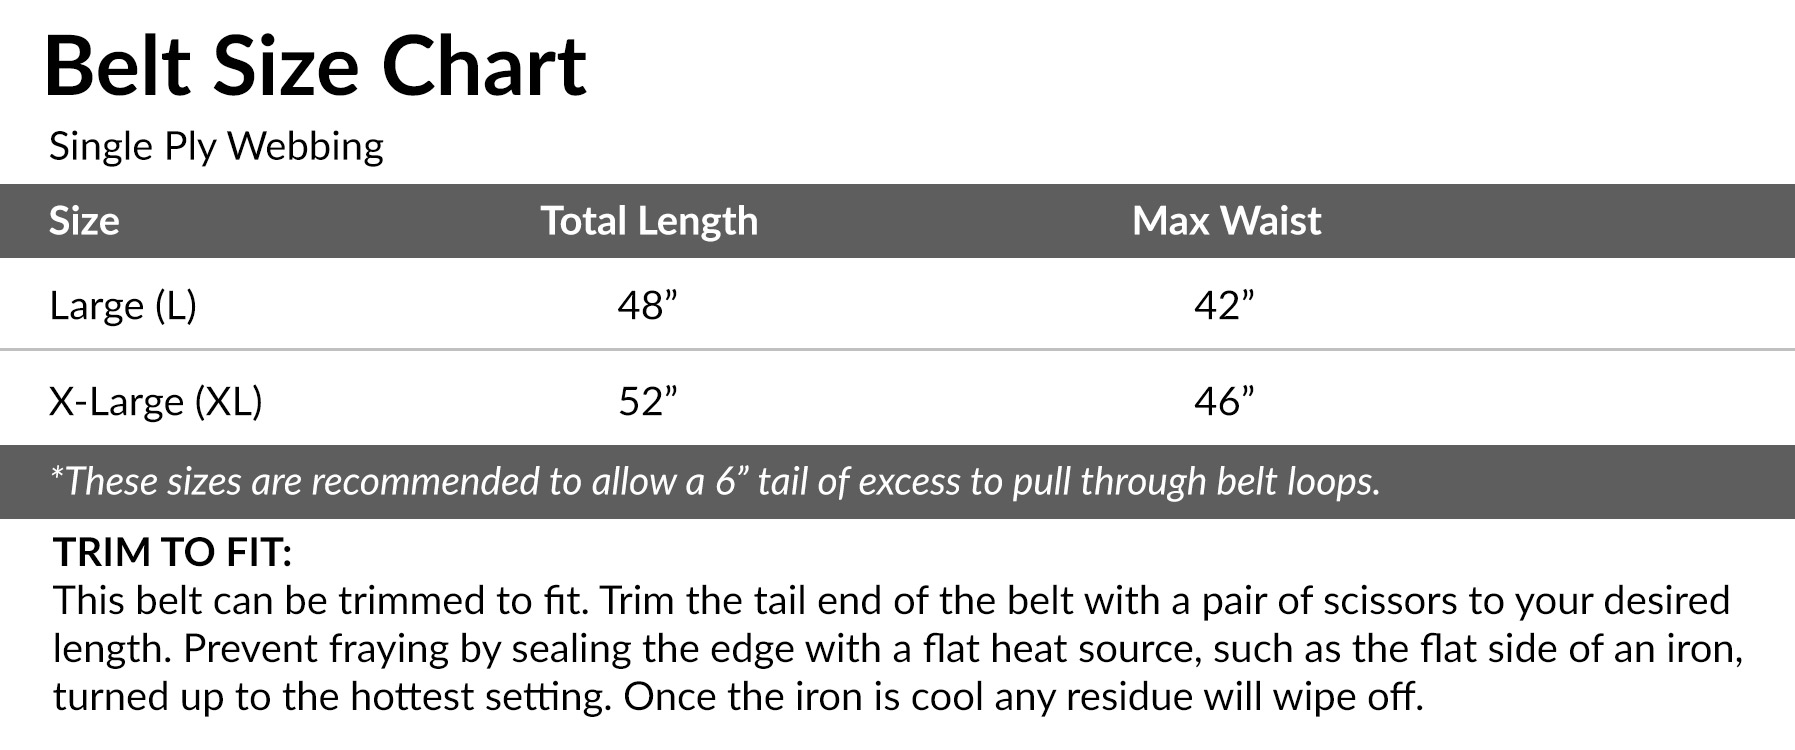 "Belt sizes should allow 6"" of tail and can be trimmed as needed."